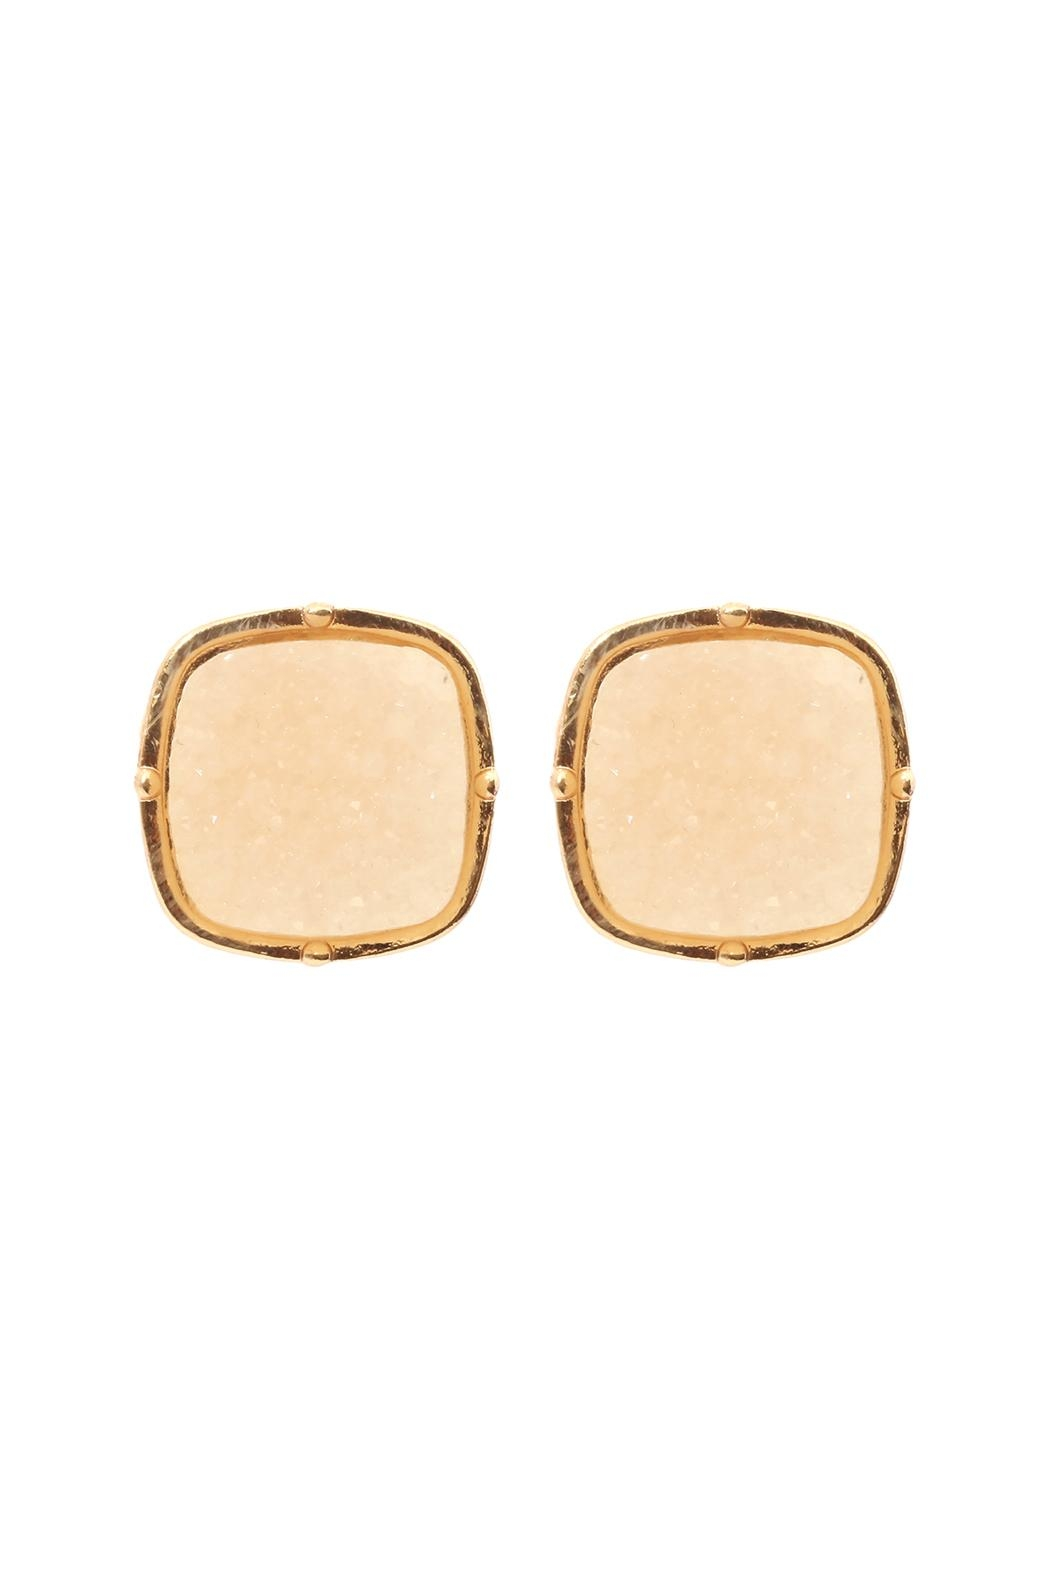 Riah Fashion Druzy-Post-Square Earrings - Front Cropped Image